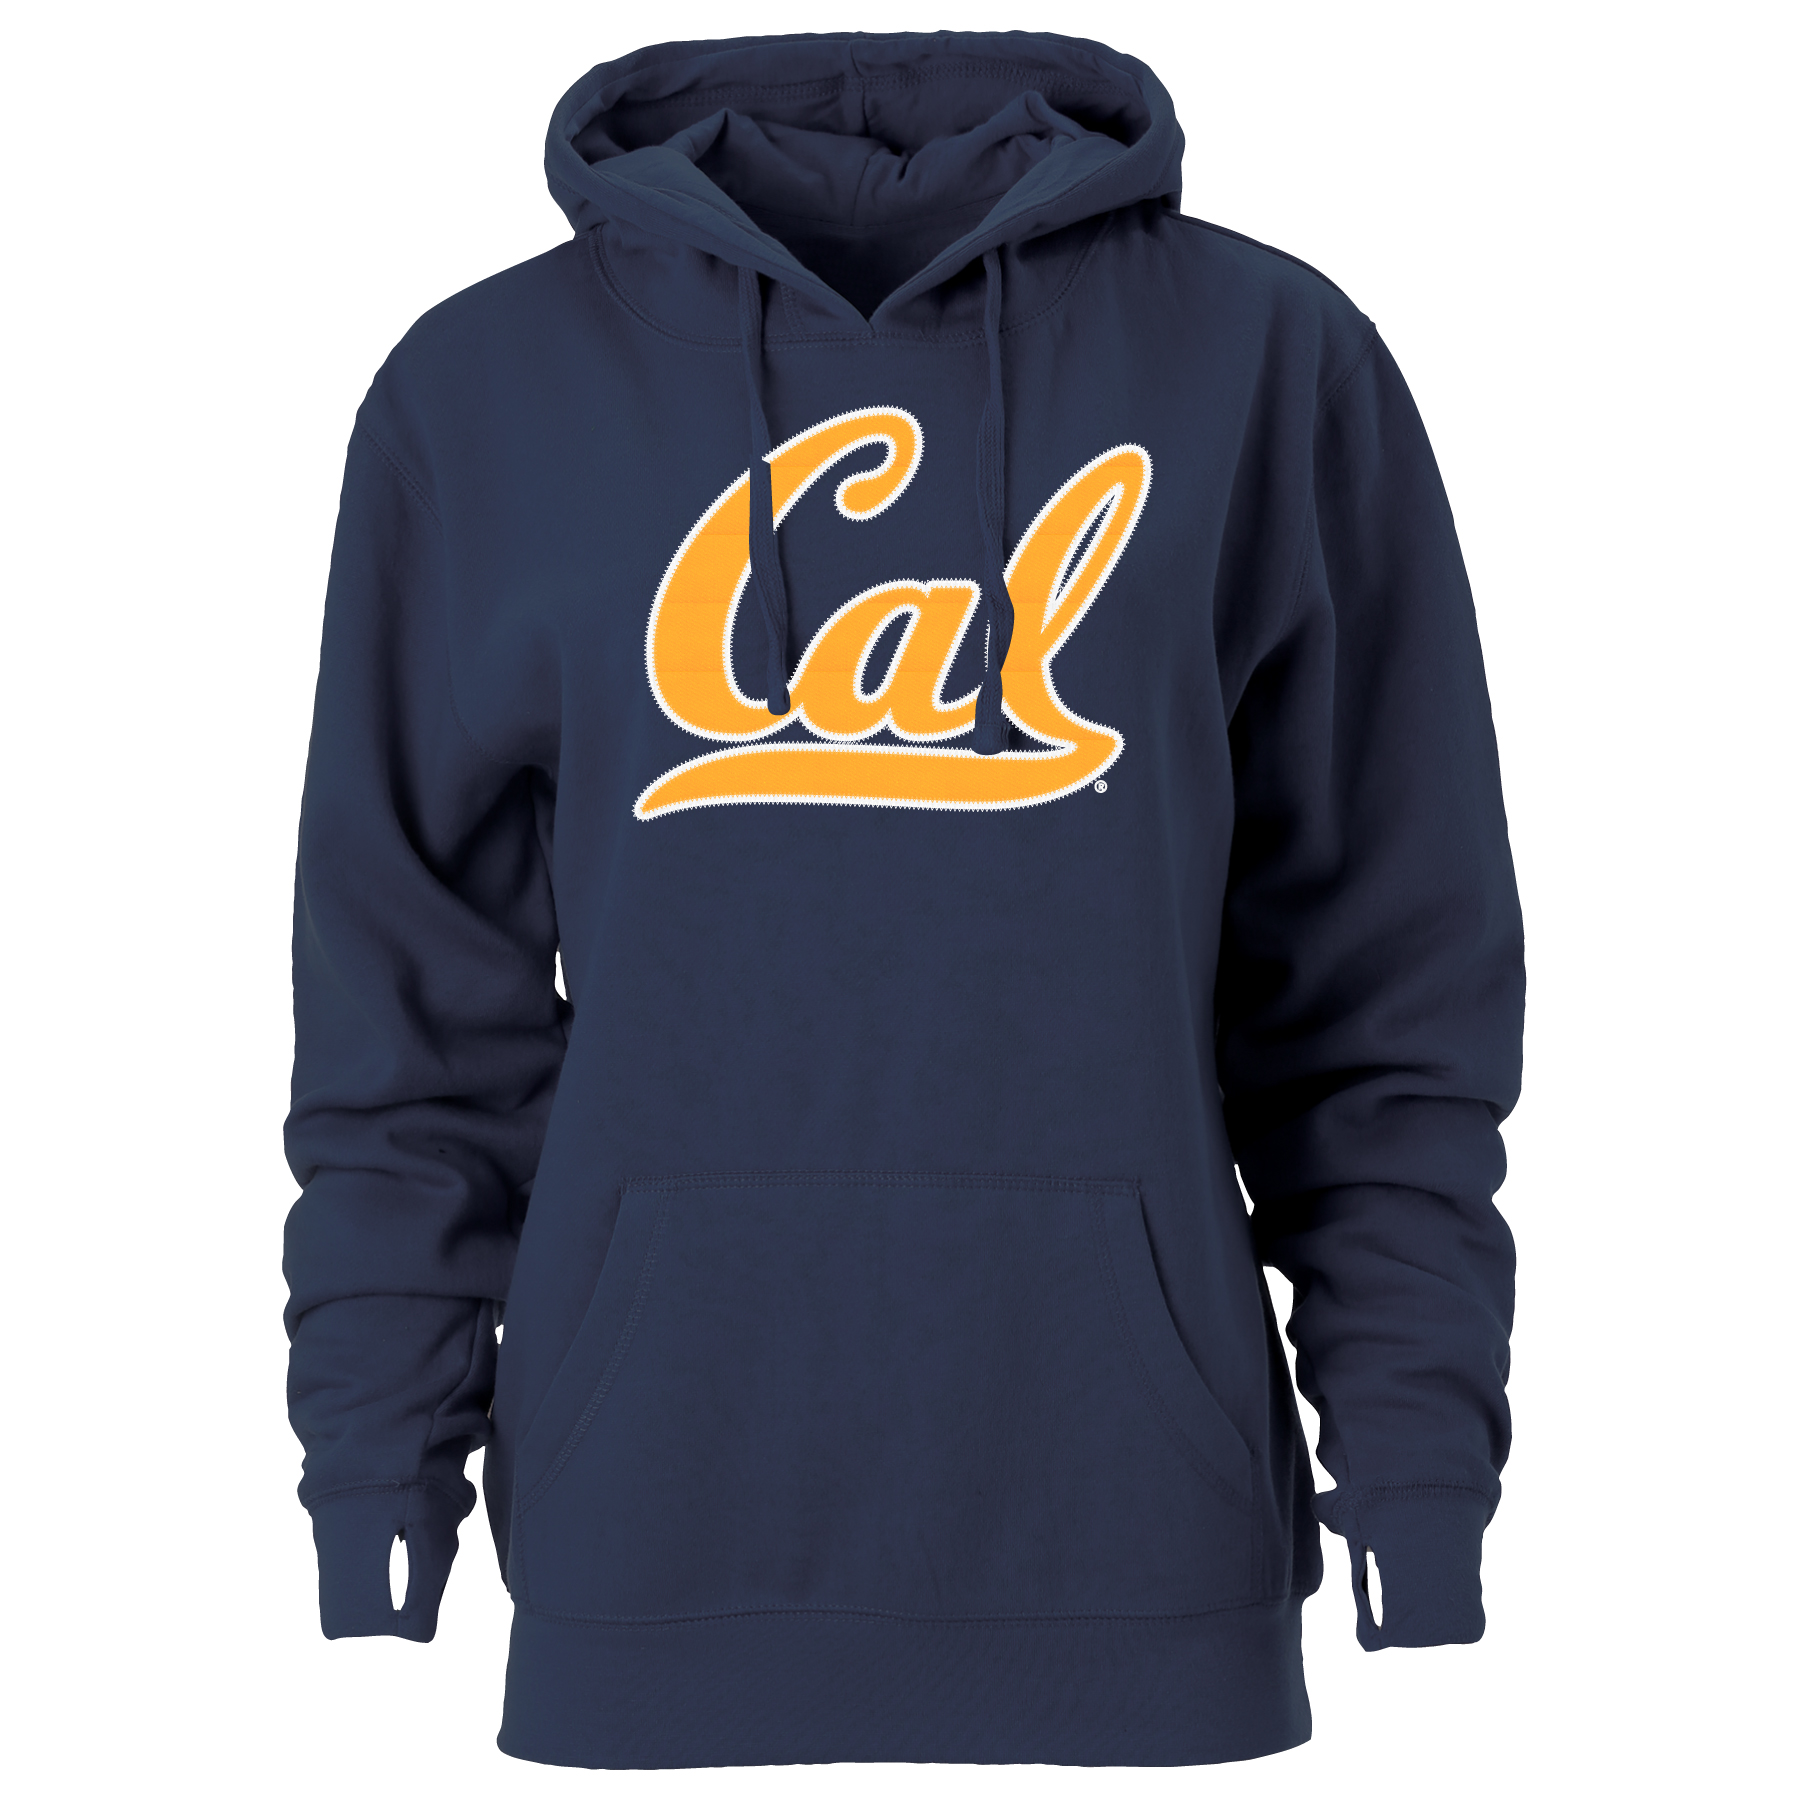 Women's Spirit Hood Cal Applique